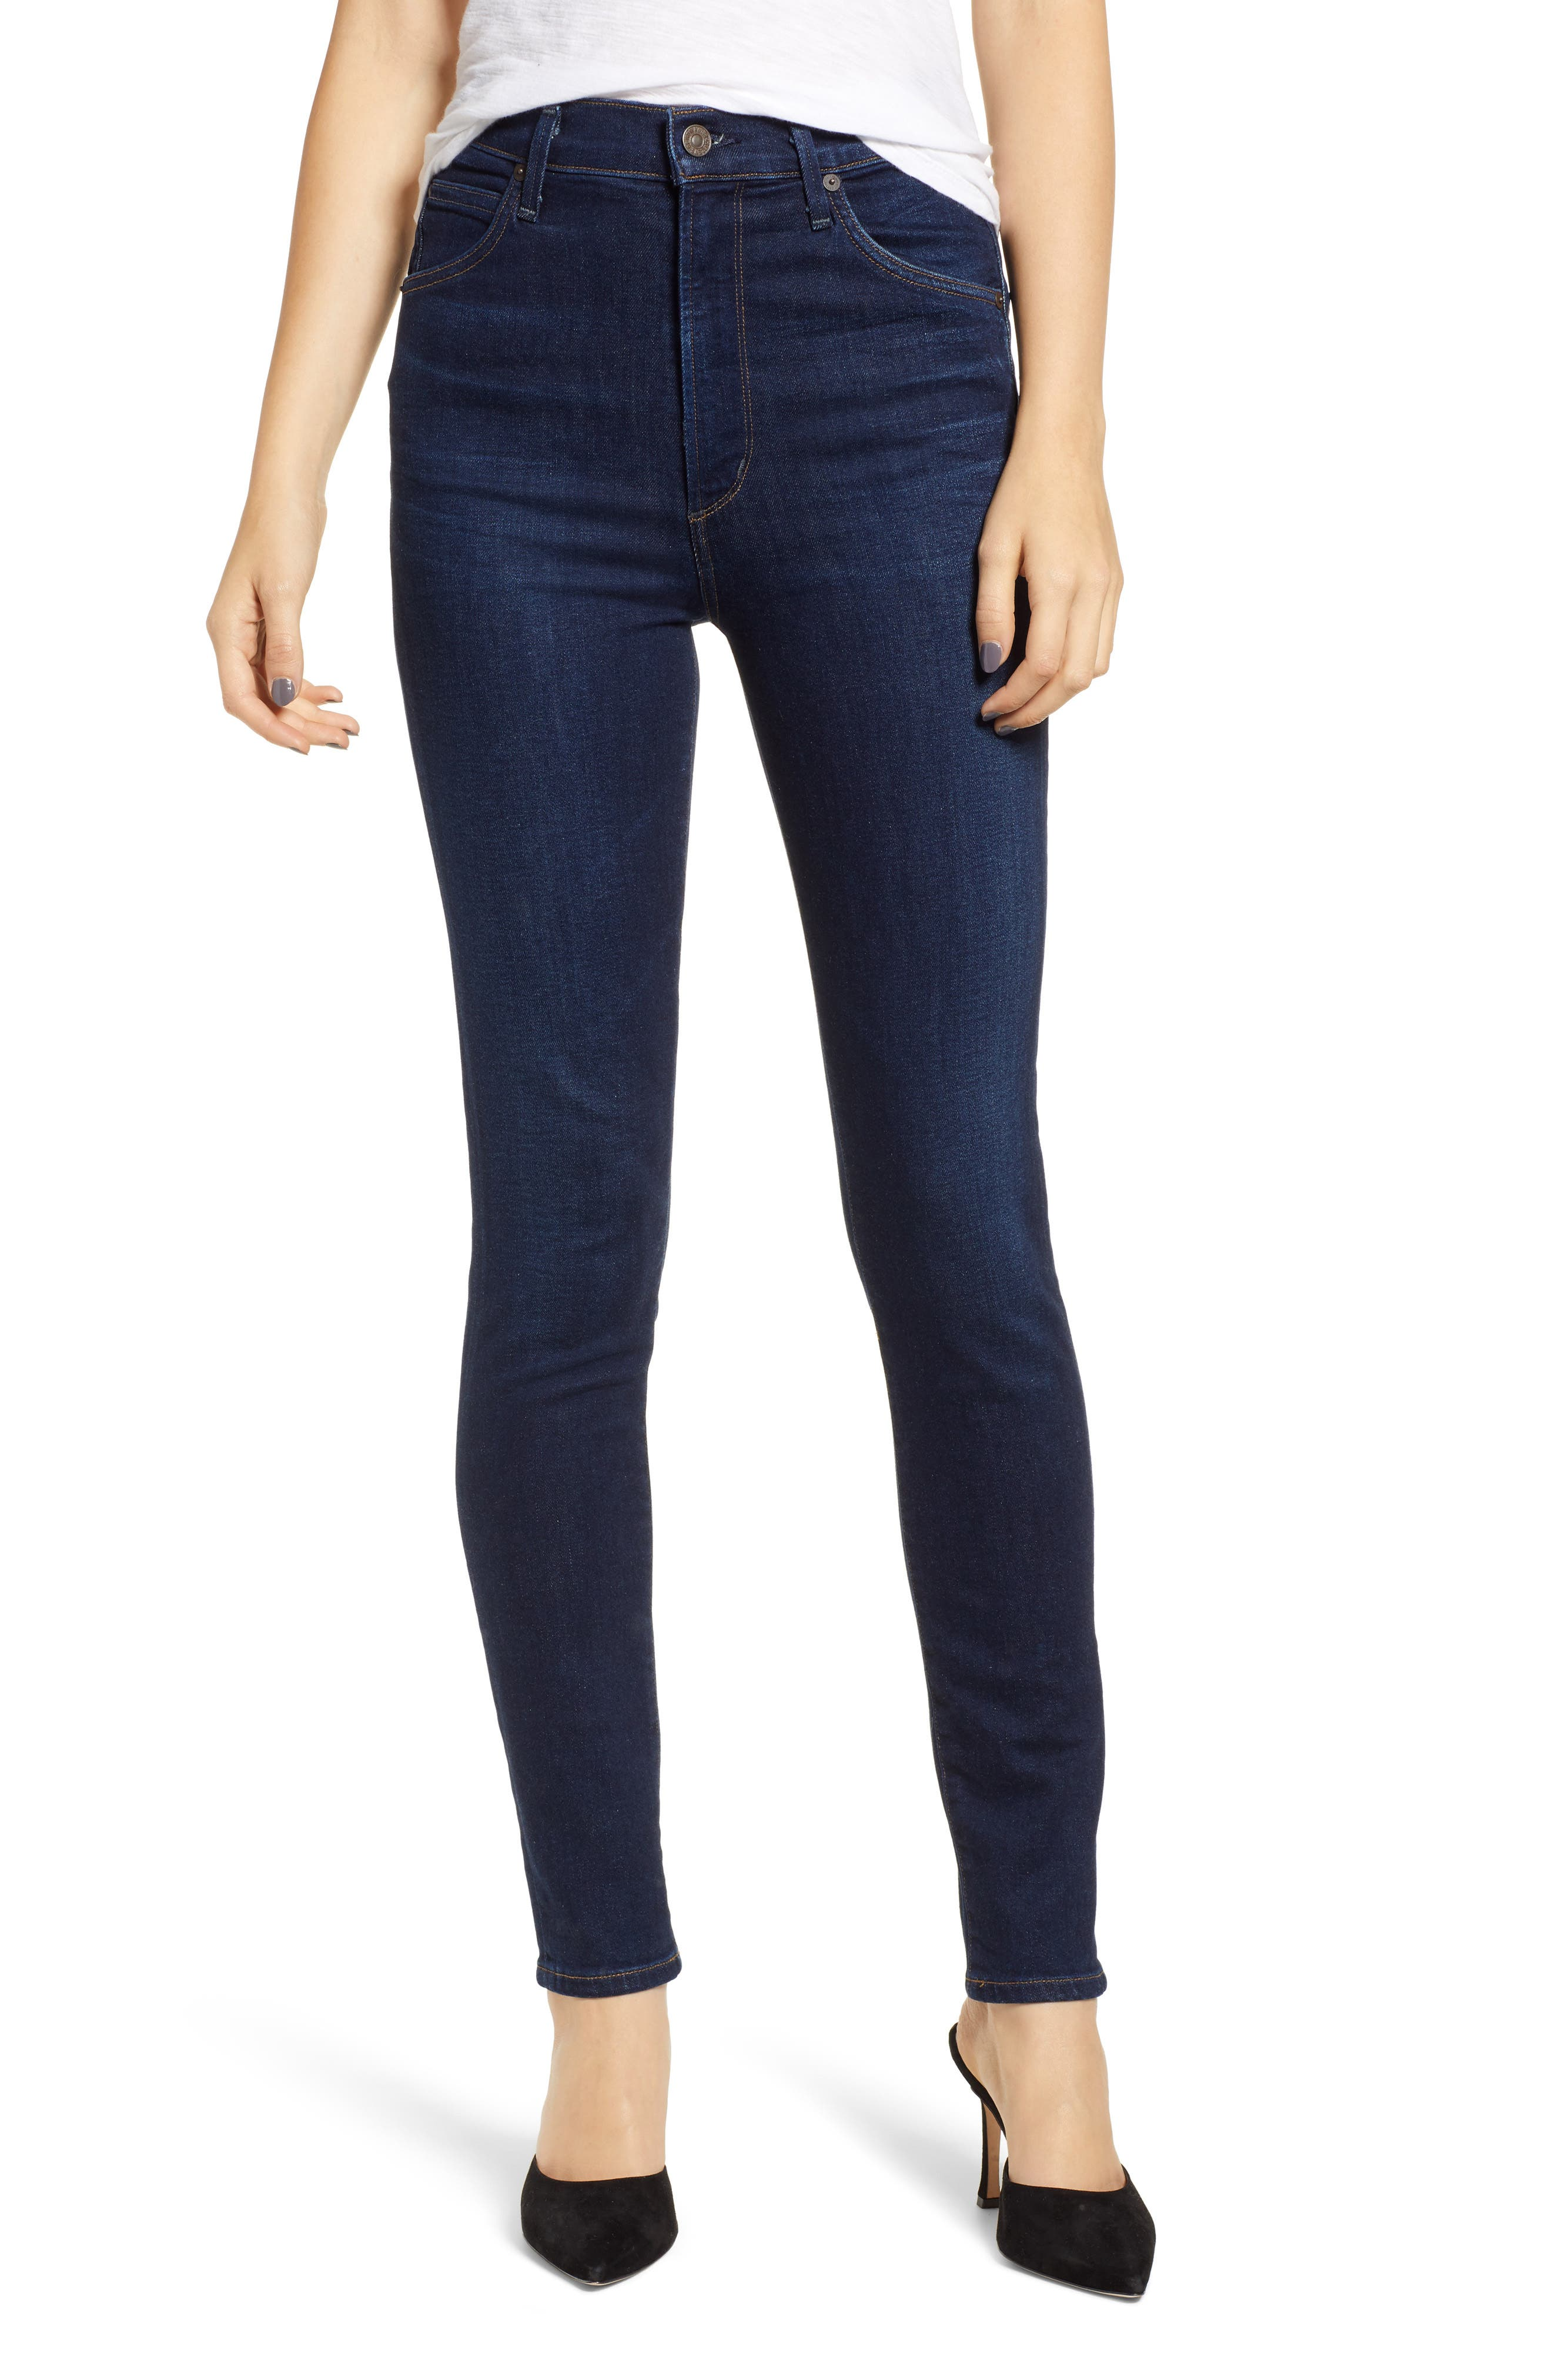 Chrissy High Waist Skinny Jeans,                             Main thumbnail 1, color,                             GALAXY